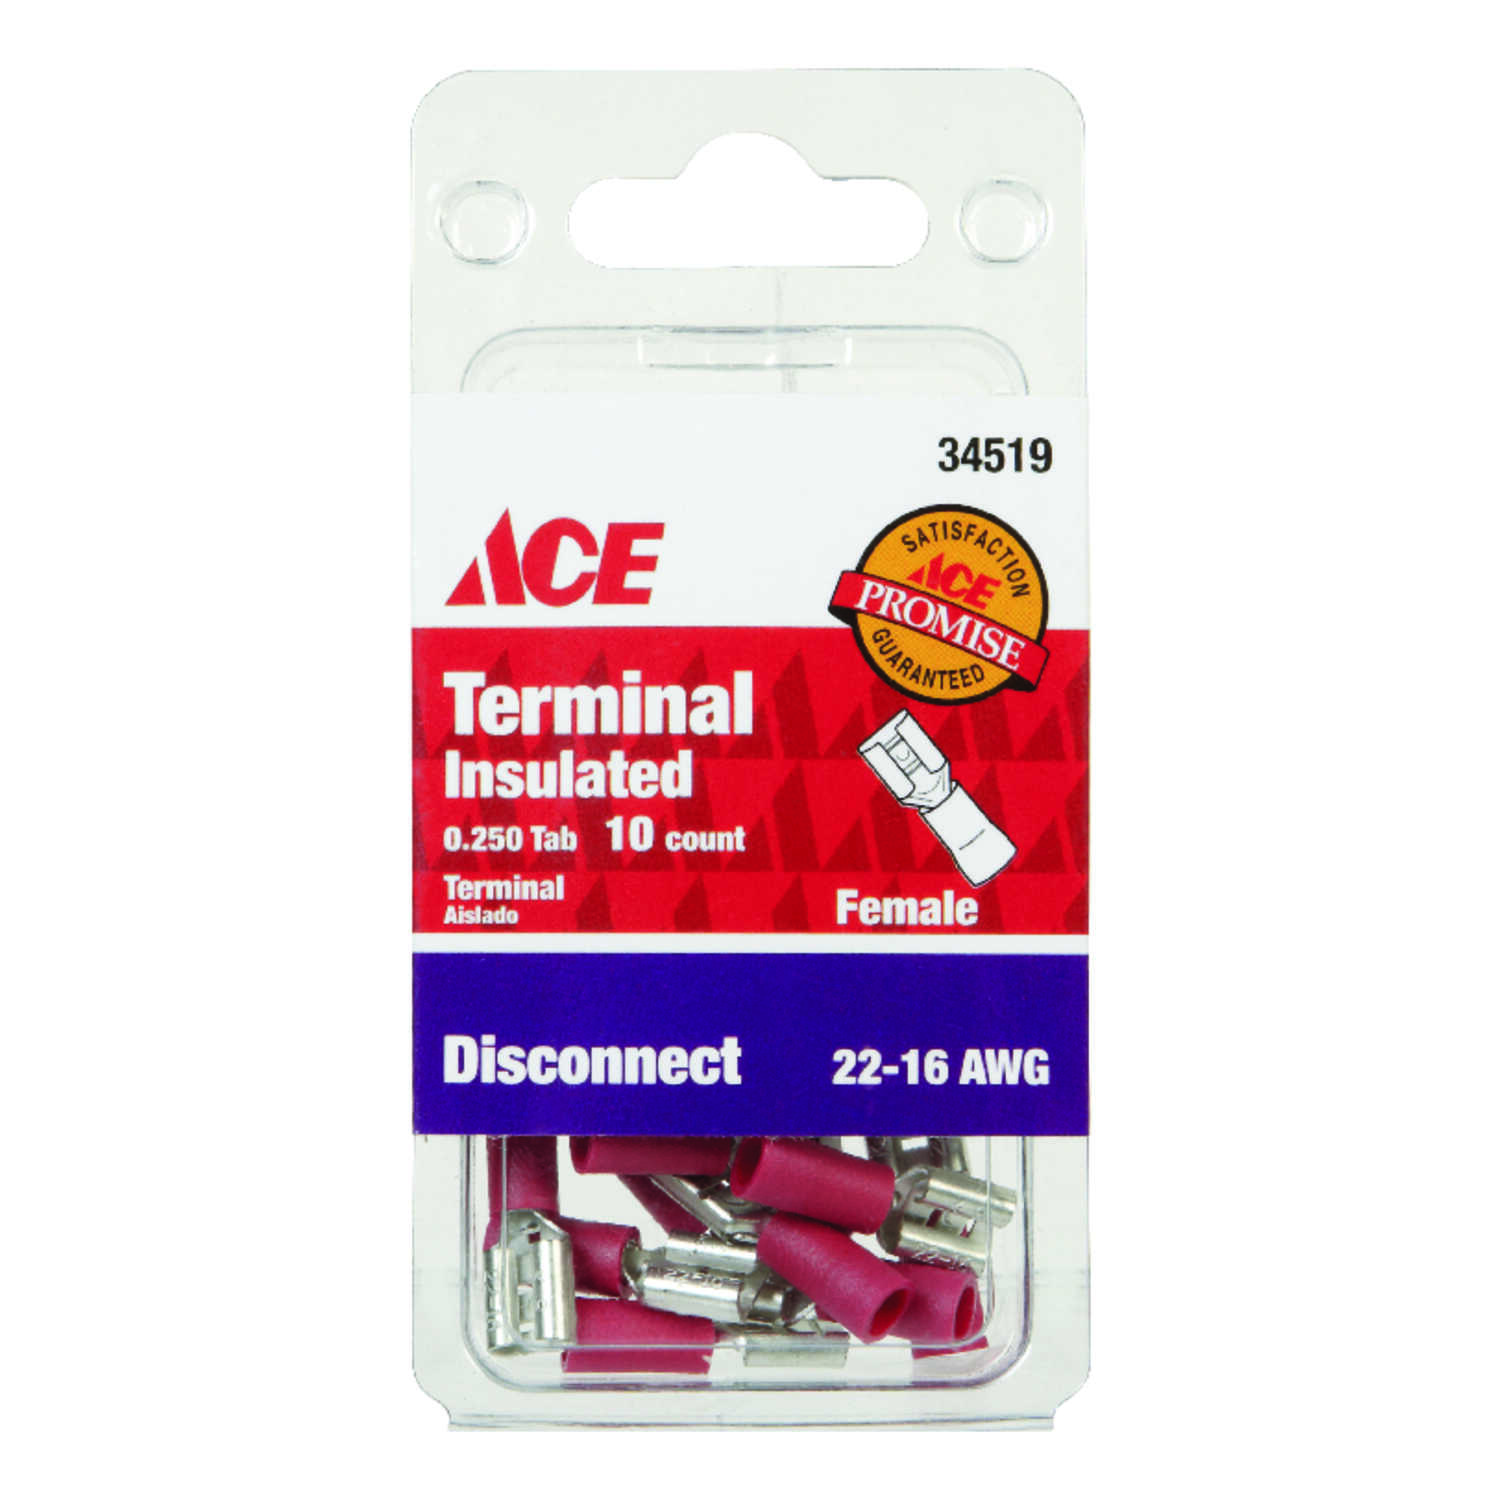 Ace Insulated Wire Female Disconnect 10 22-16 AWG - Ace Hardware